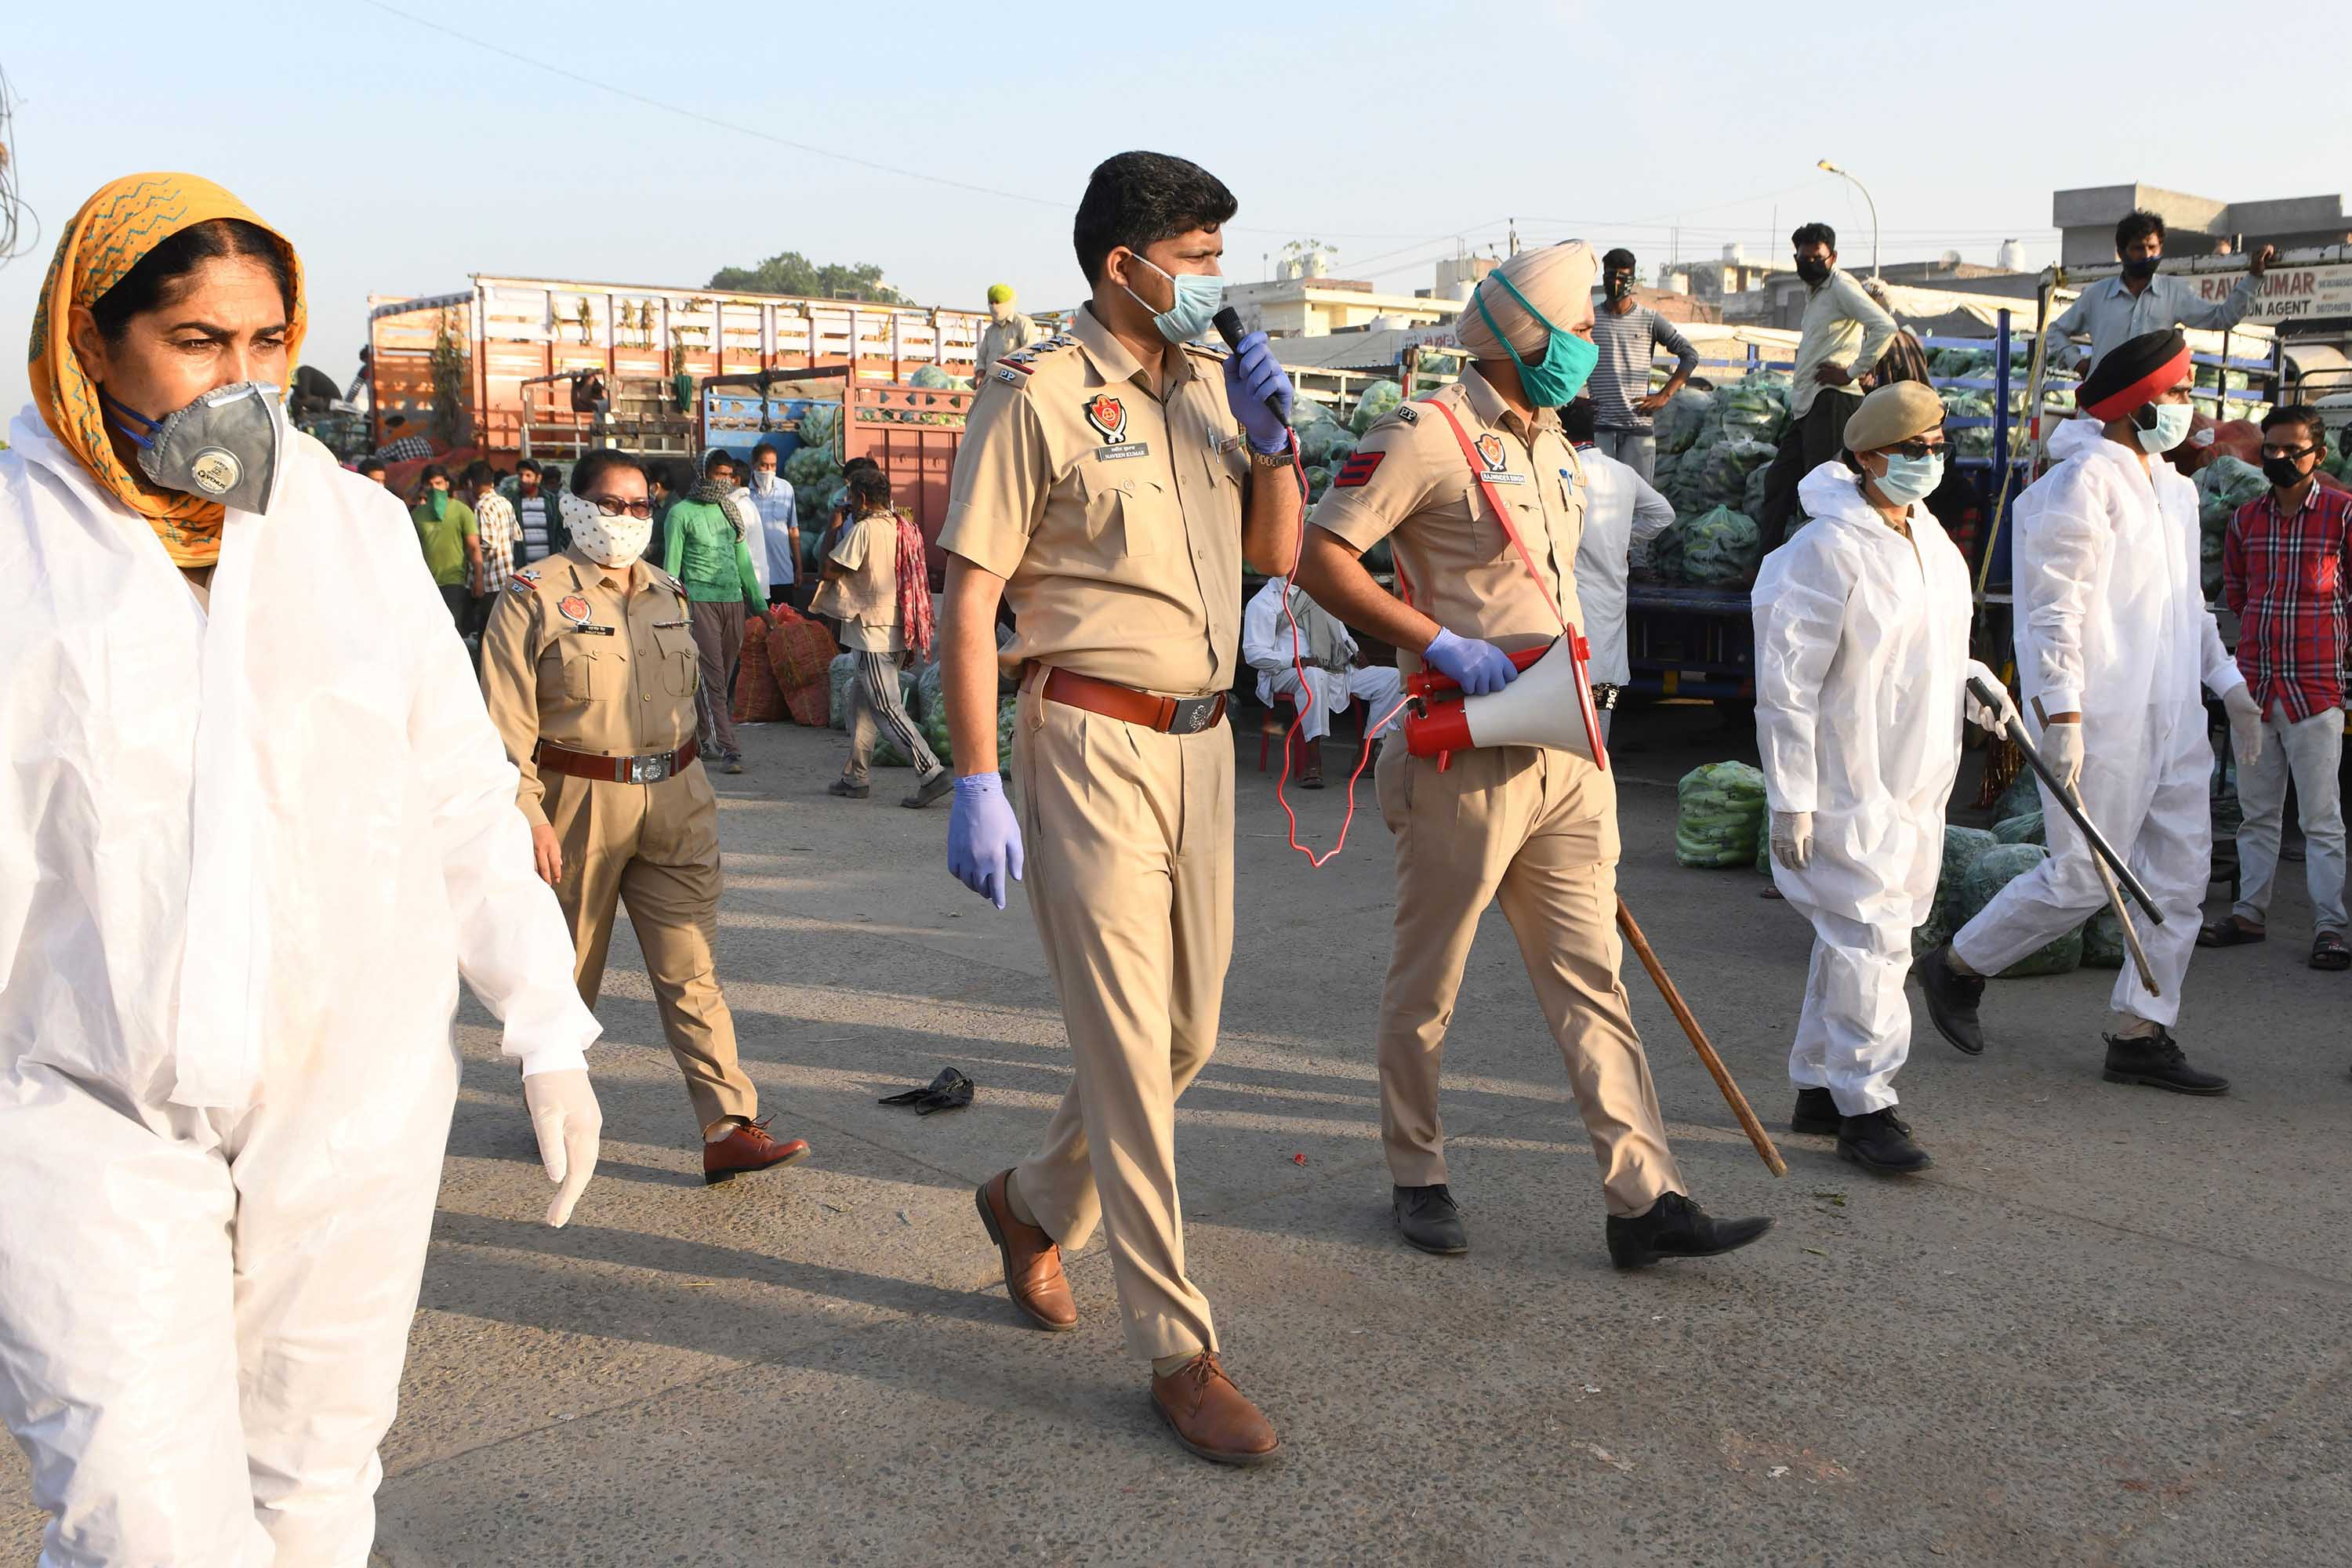 Punjab police personnel patrol a vegetable market during a government-imposed nationwide lockdown on the outskirts of Amritsar, India, on May 1.